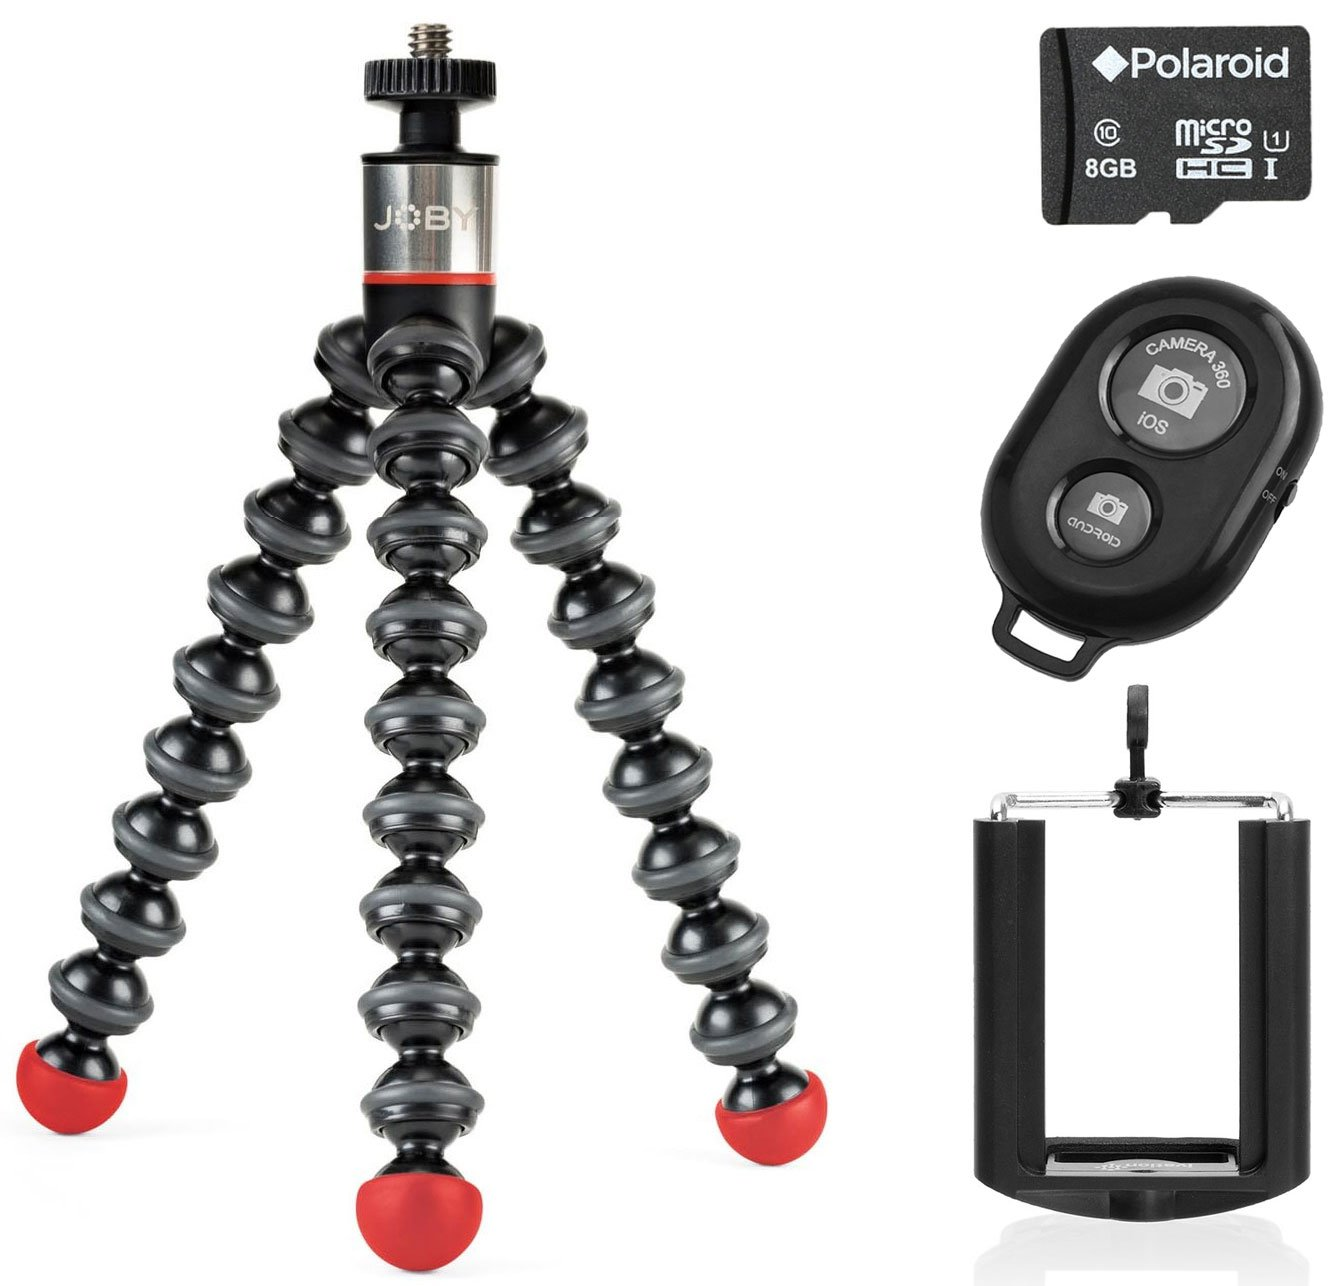 Joby GorillaPod Magnetic Tripod with Wireless Bluetooth Camera Shutter Remote Control for Apple and Android Phones and Universal Tripod Mount for Smartphones w/a 8GB Micro SDHC Class 10 Memory Card